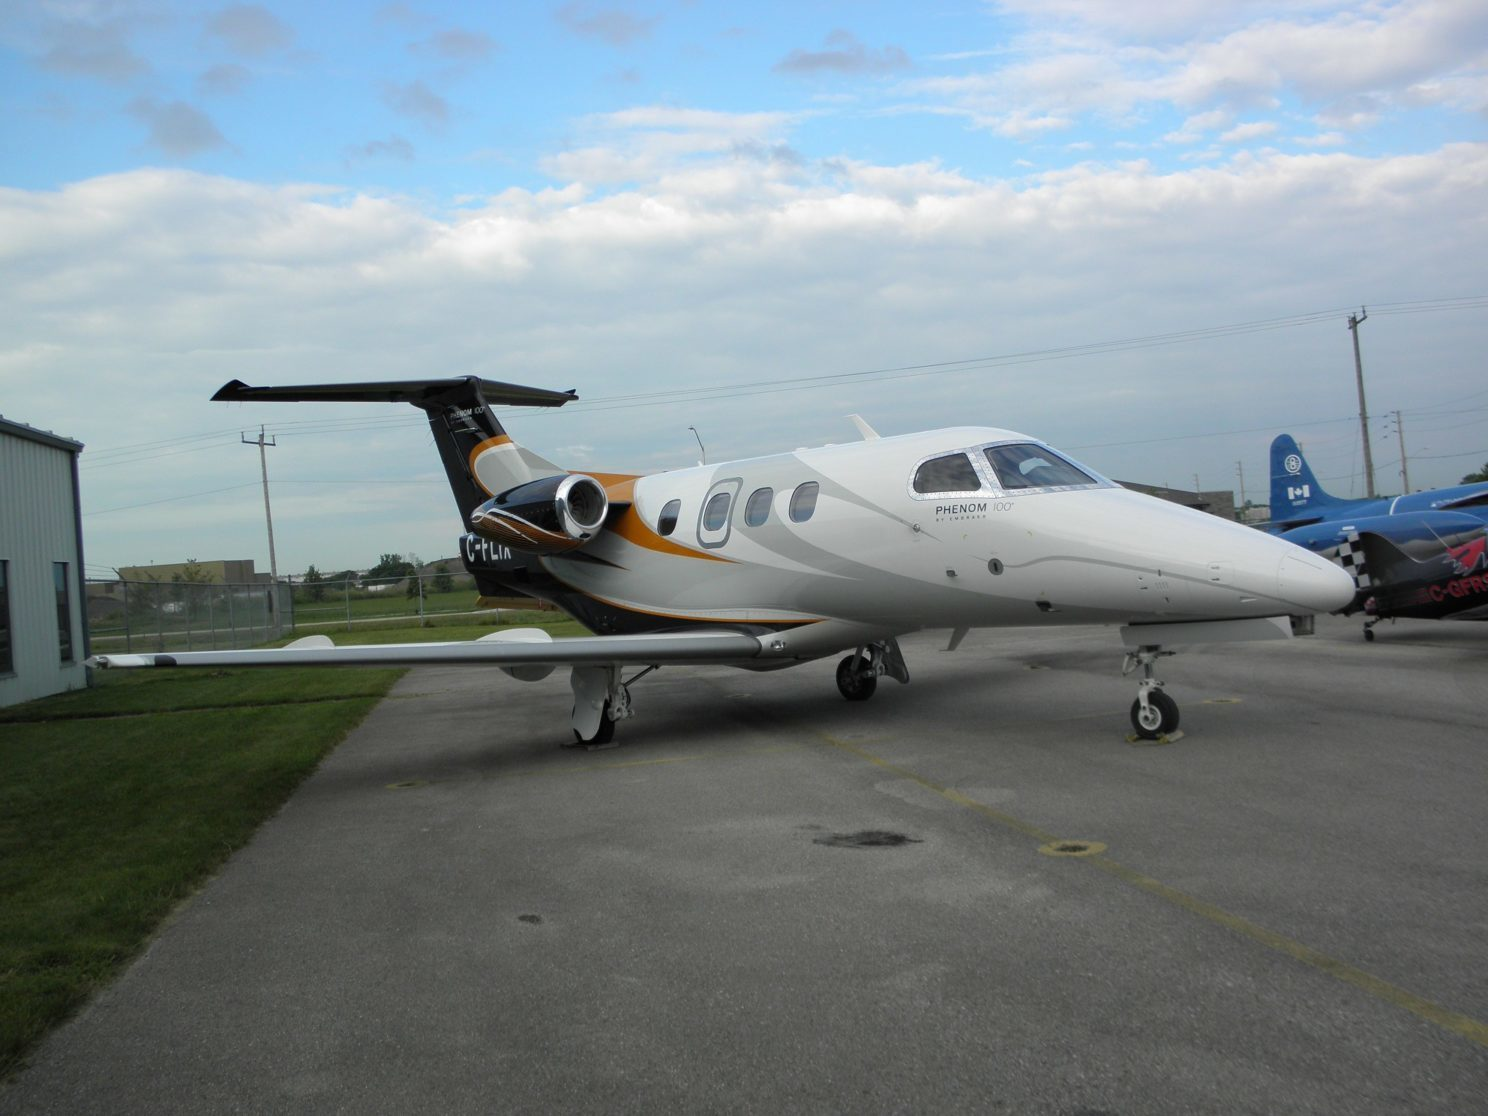 Black and white Embraer Phenom 100 aircraft.